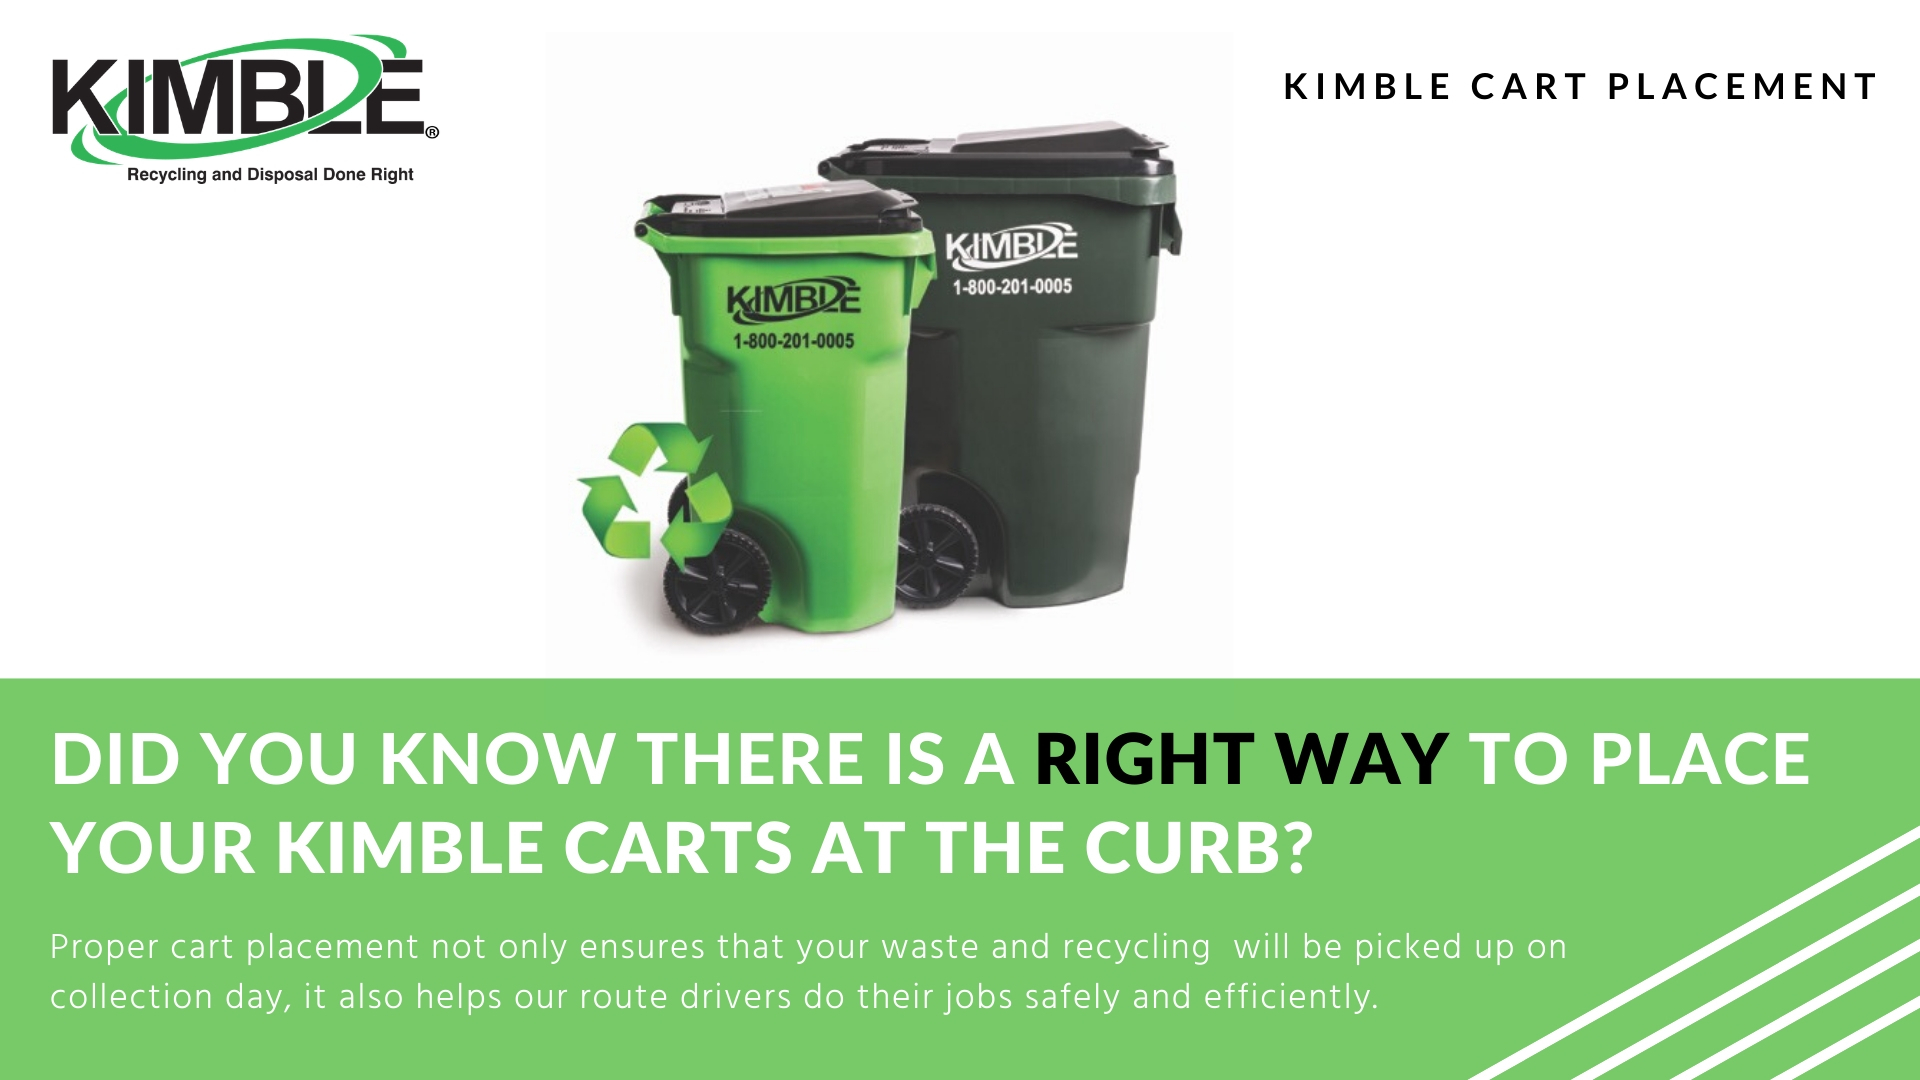 Kimble Cart Placement Guide